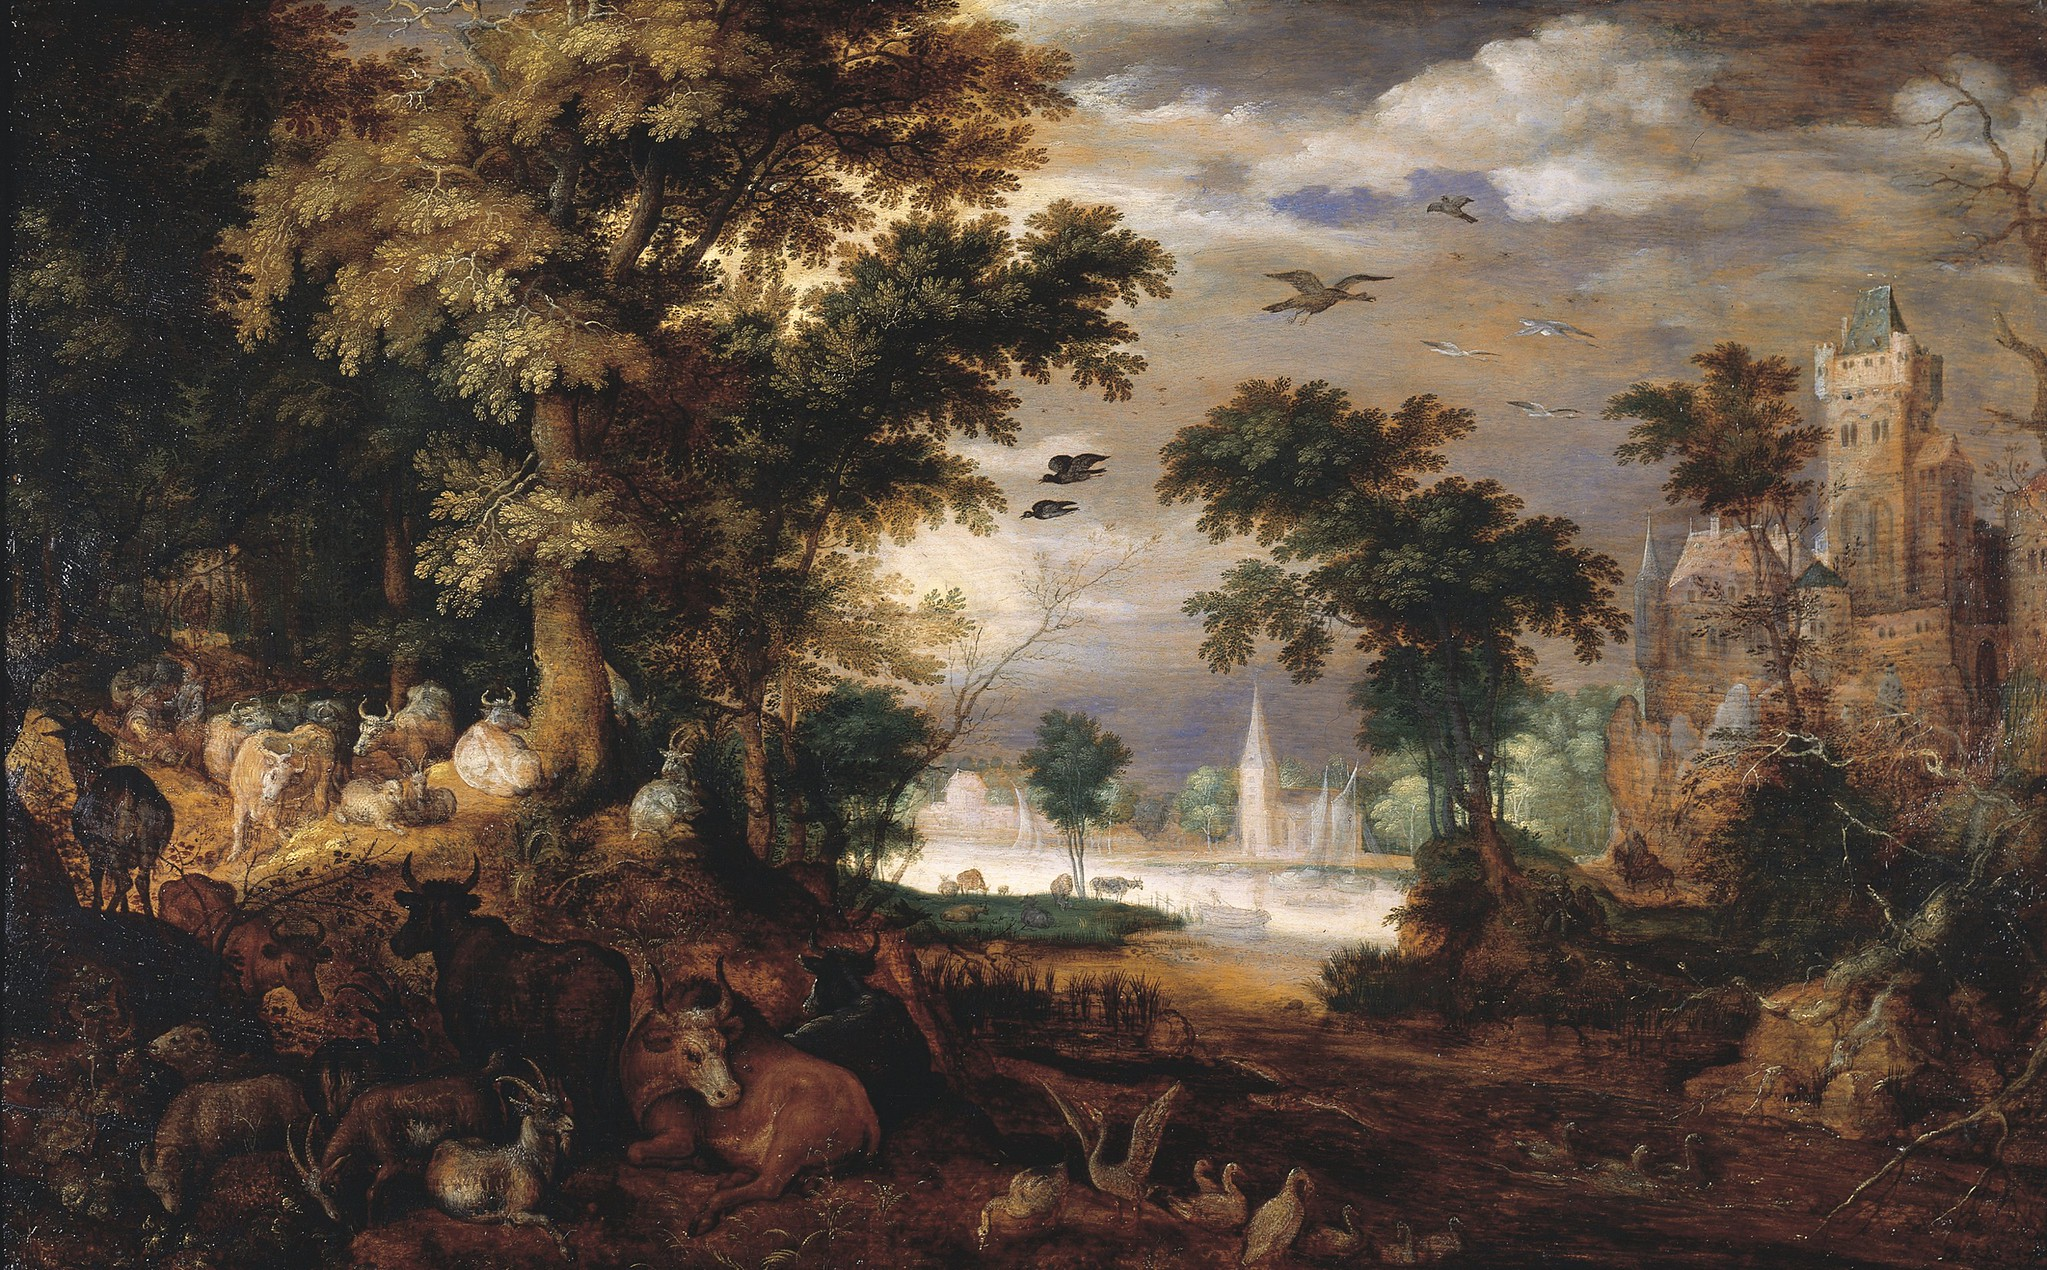 Roelandt Savery, Forest Landscape with Cattle and Castle Beyond, Long-term loan, Groeningemuseum